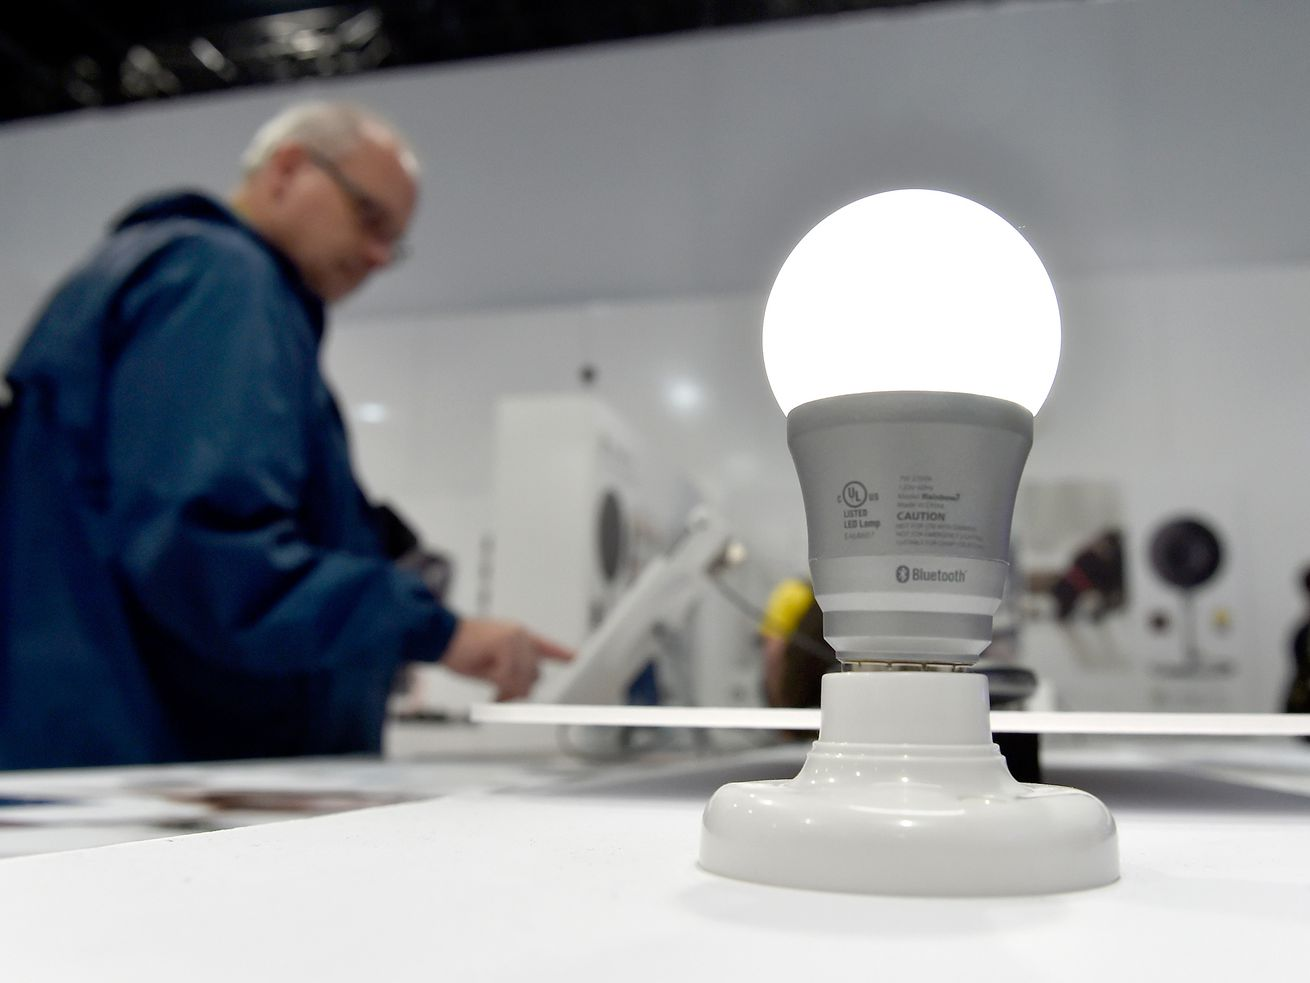 A high-tech, energy-efficient LED light bulb is seen on a display at CES, the consumer electronics show, with a man browsing the booth in the background.